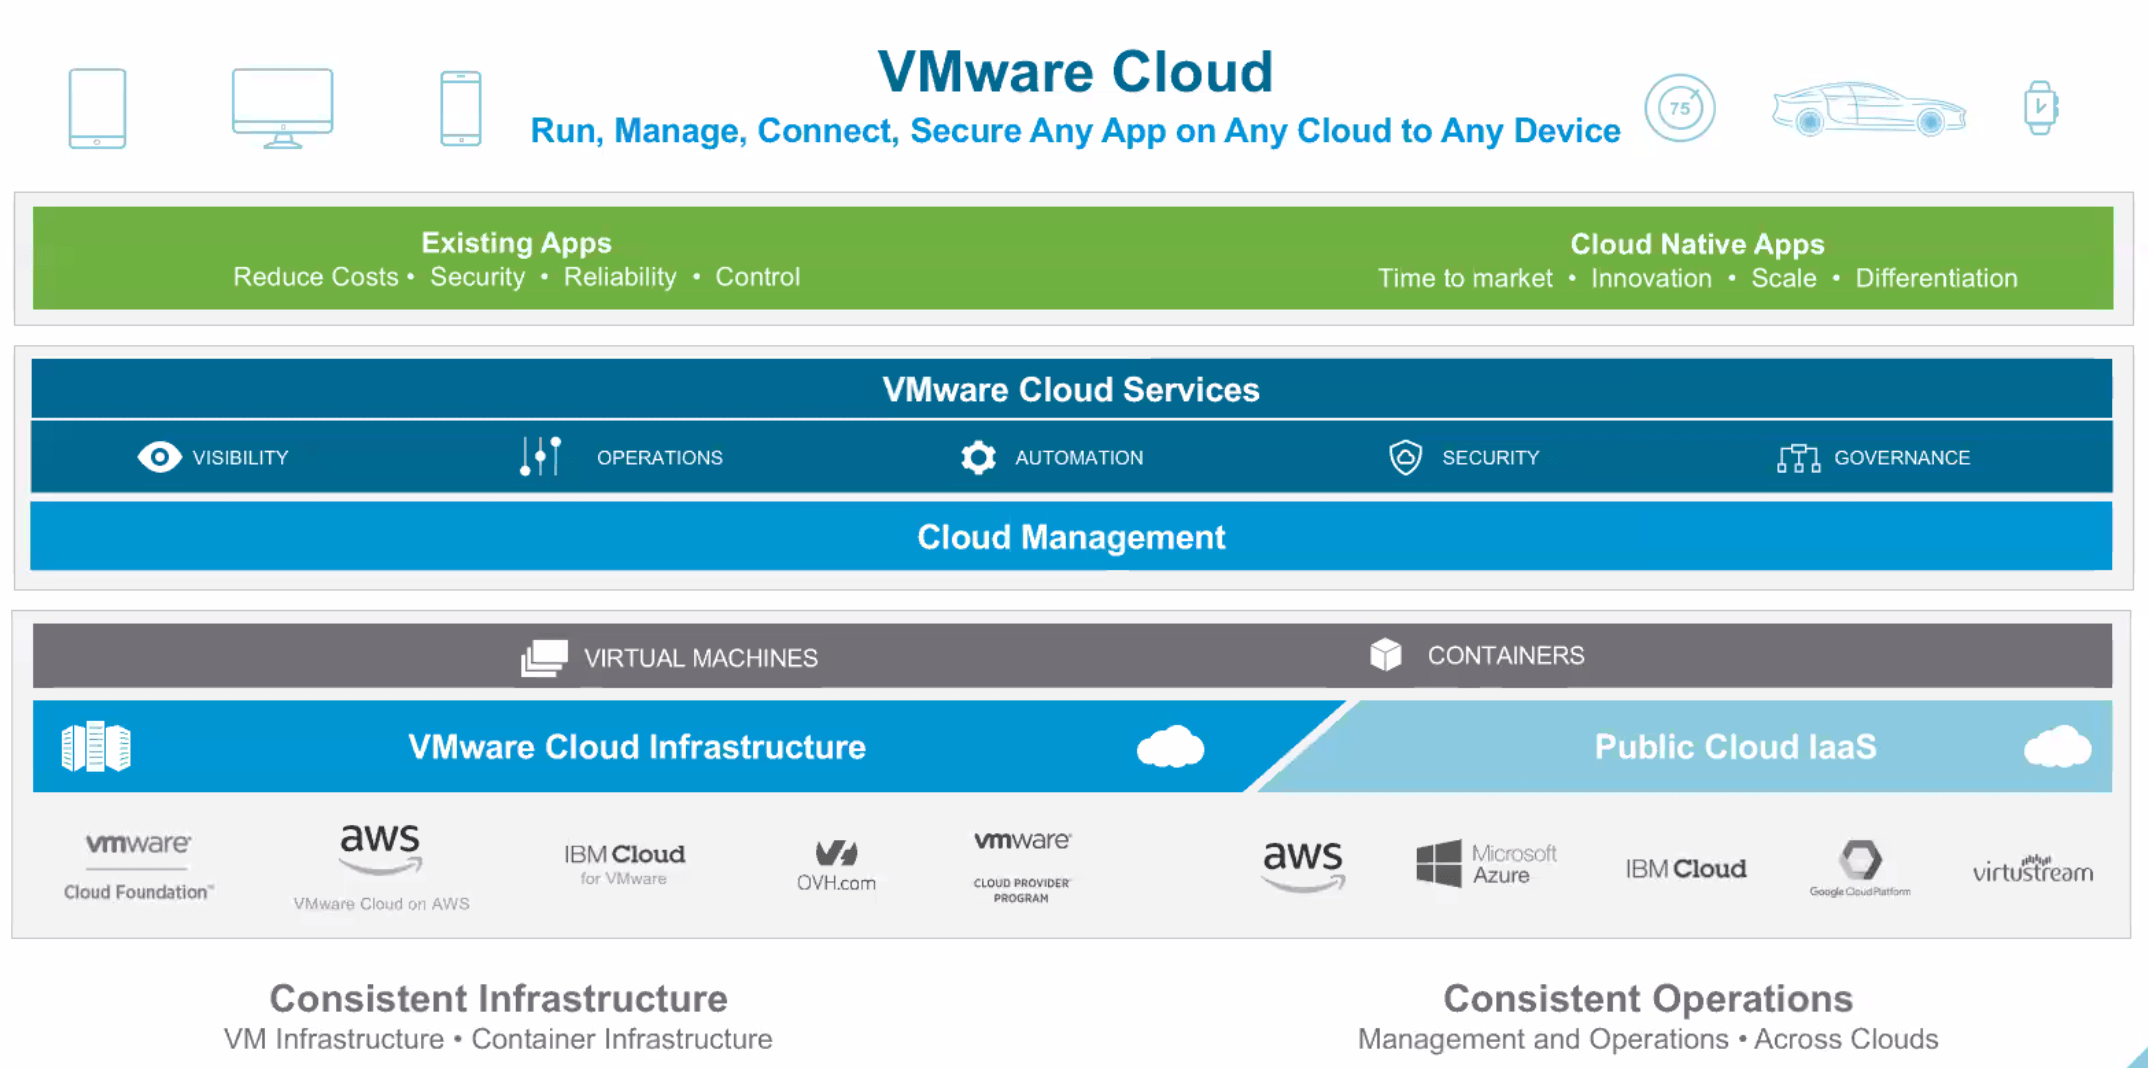 VMware Cloud Briefing Roundup - VMware Cloud on AWS and other